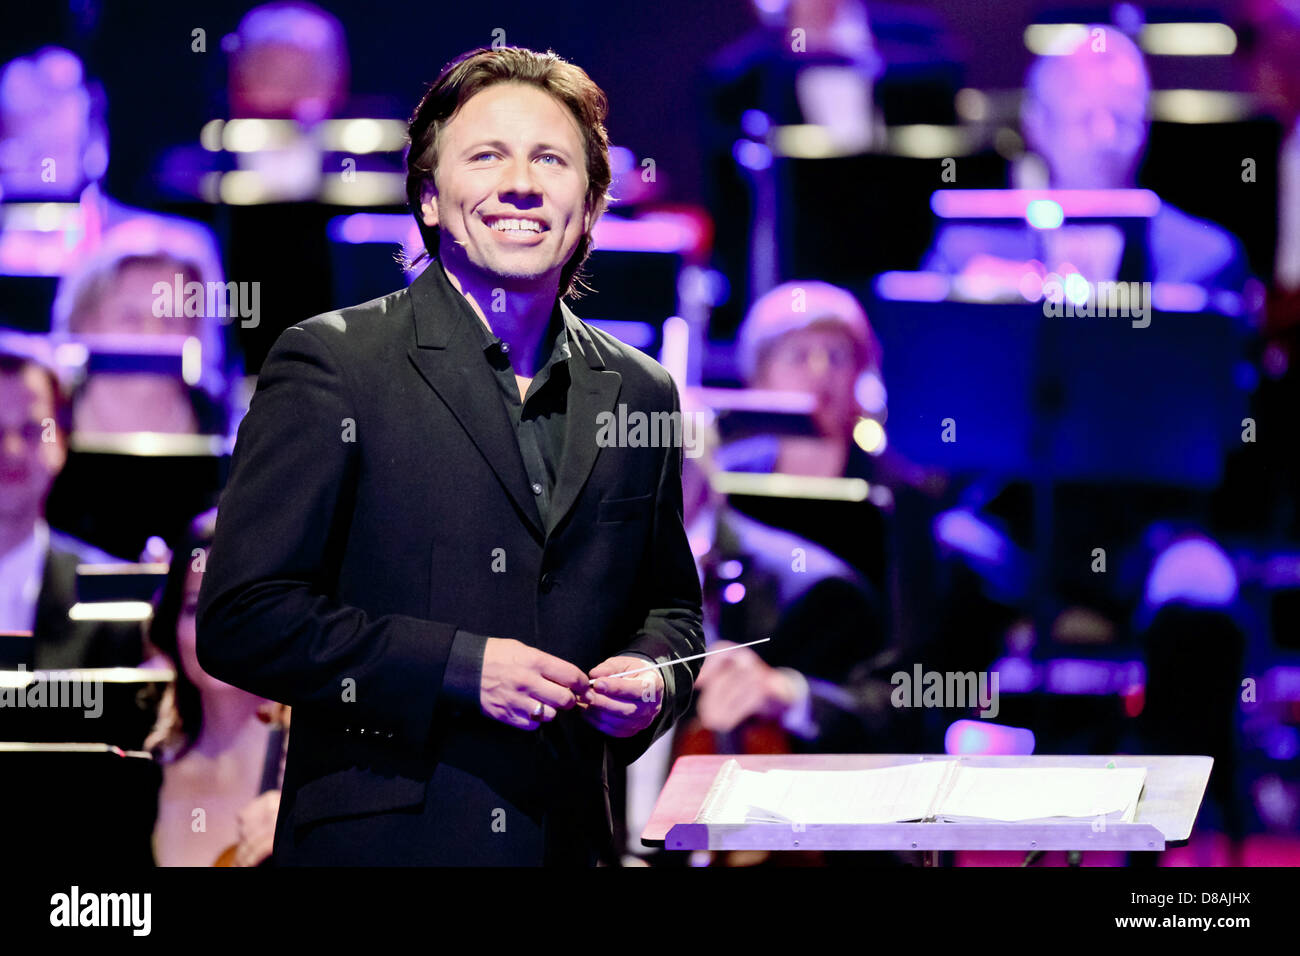 Leipzig, Germany. 21st May 2013. Estonian conductor of the MDR symphony orchestra Kristjan Jarvi receives the European - Stock Image